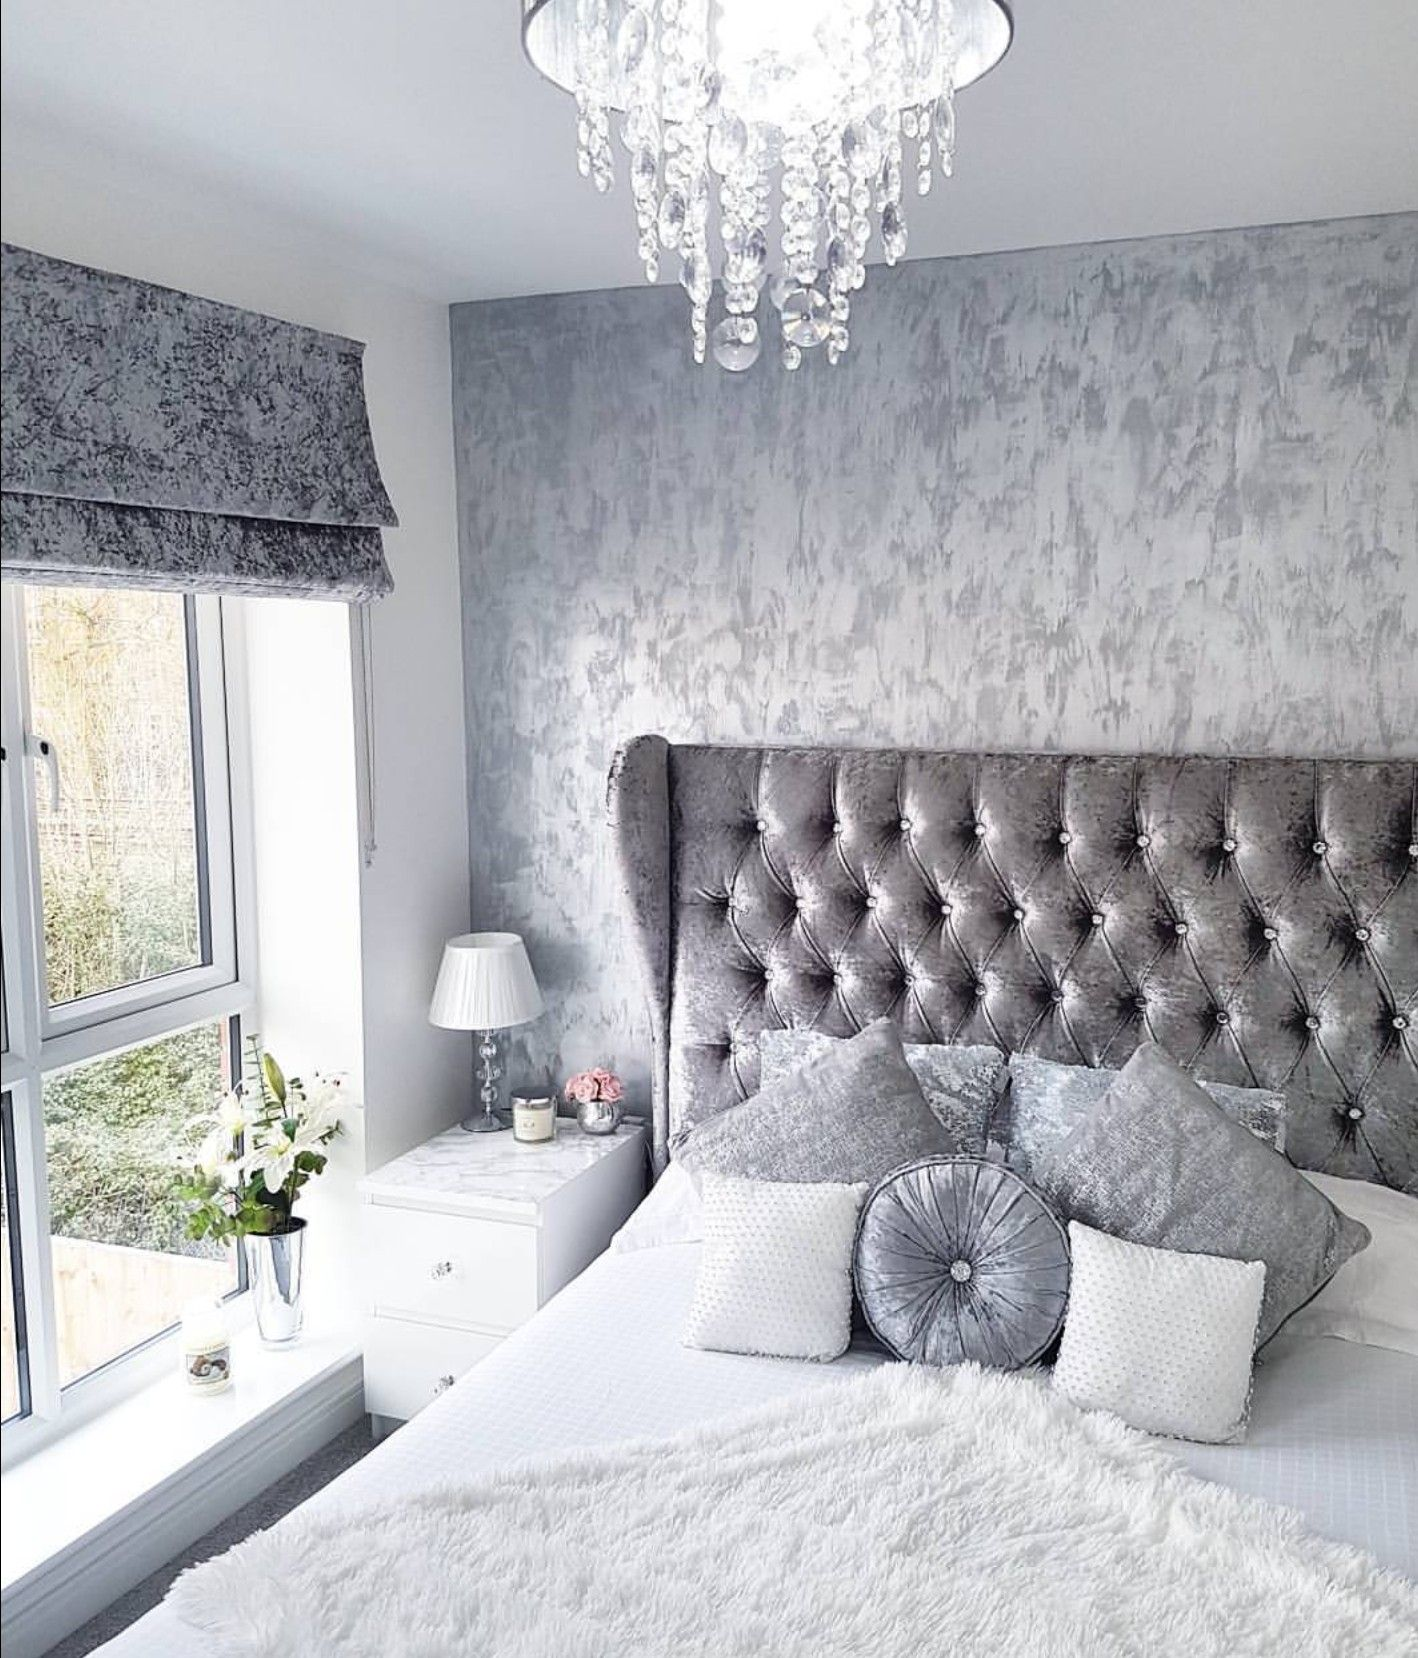 Grey Silver White Crushed Velvet Bedroom Modern Decor Inspo